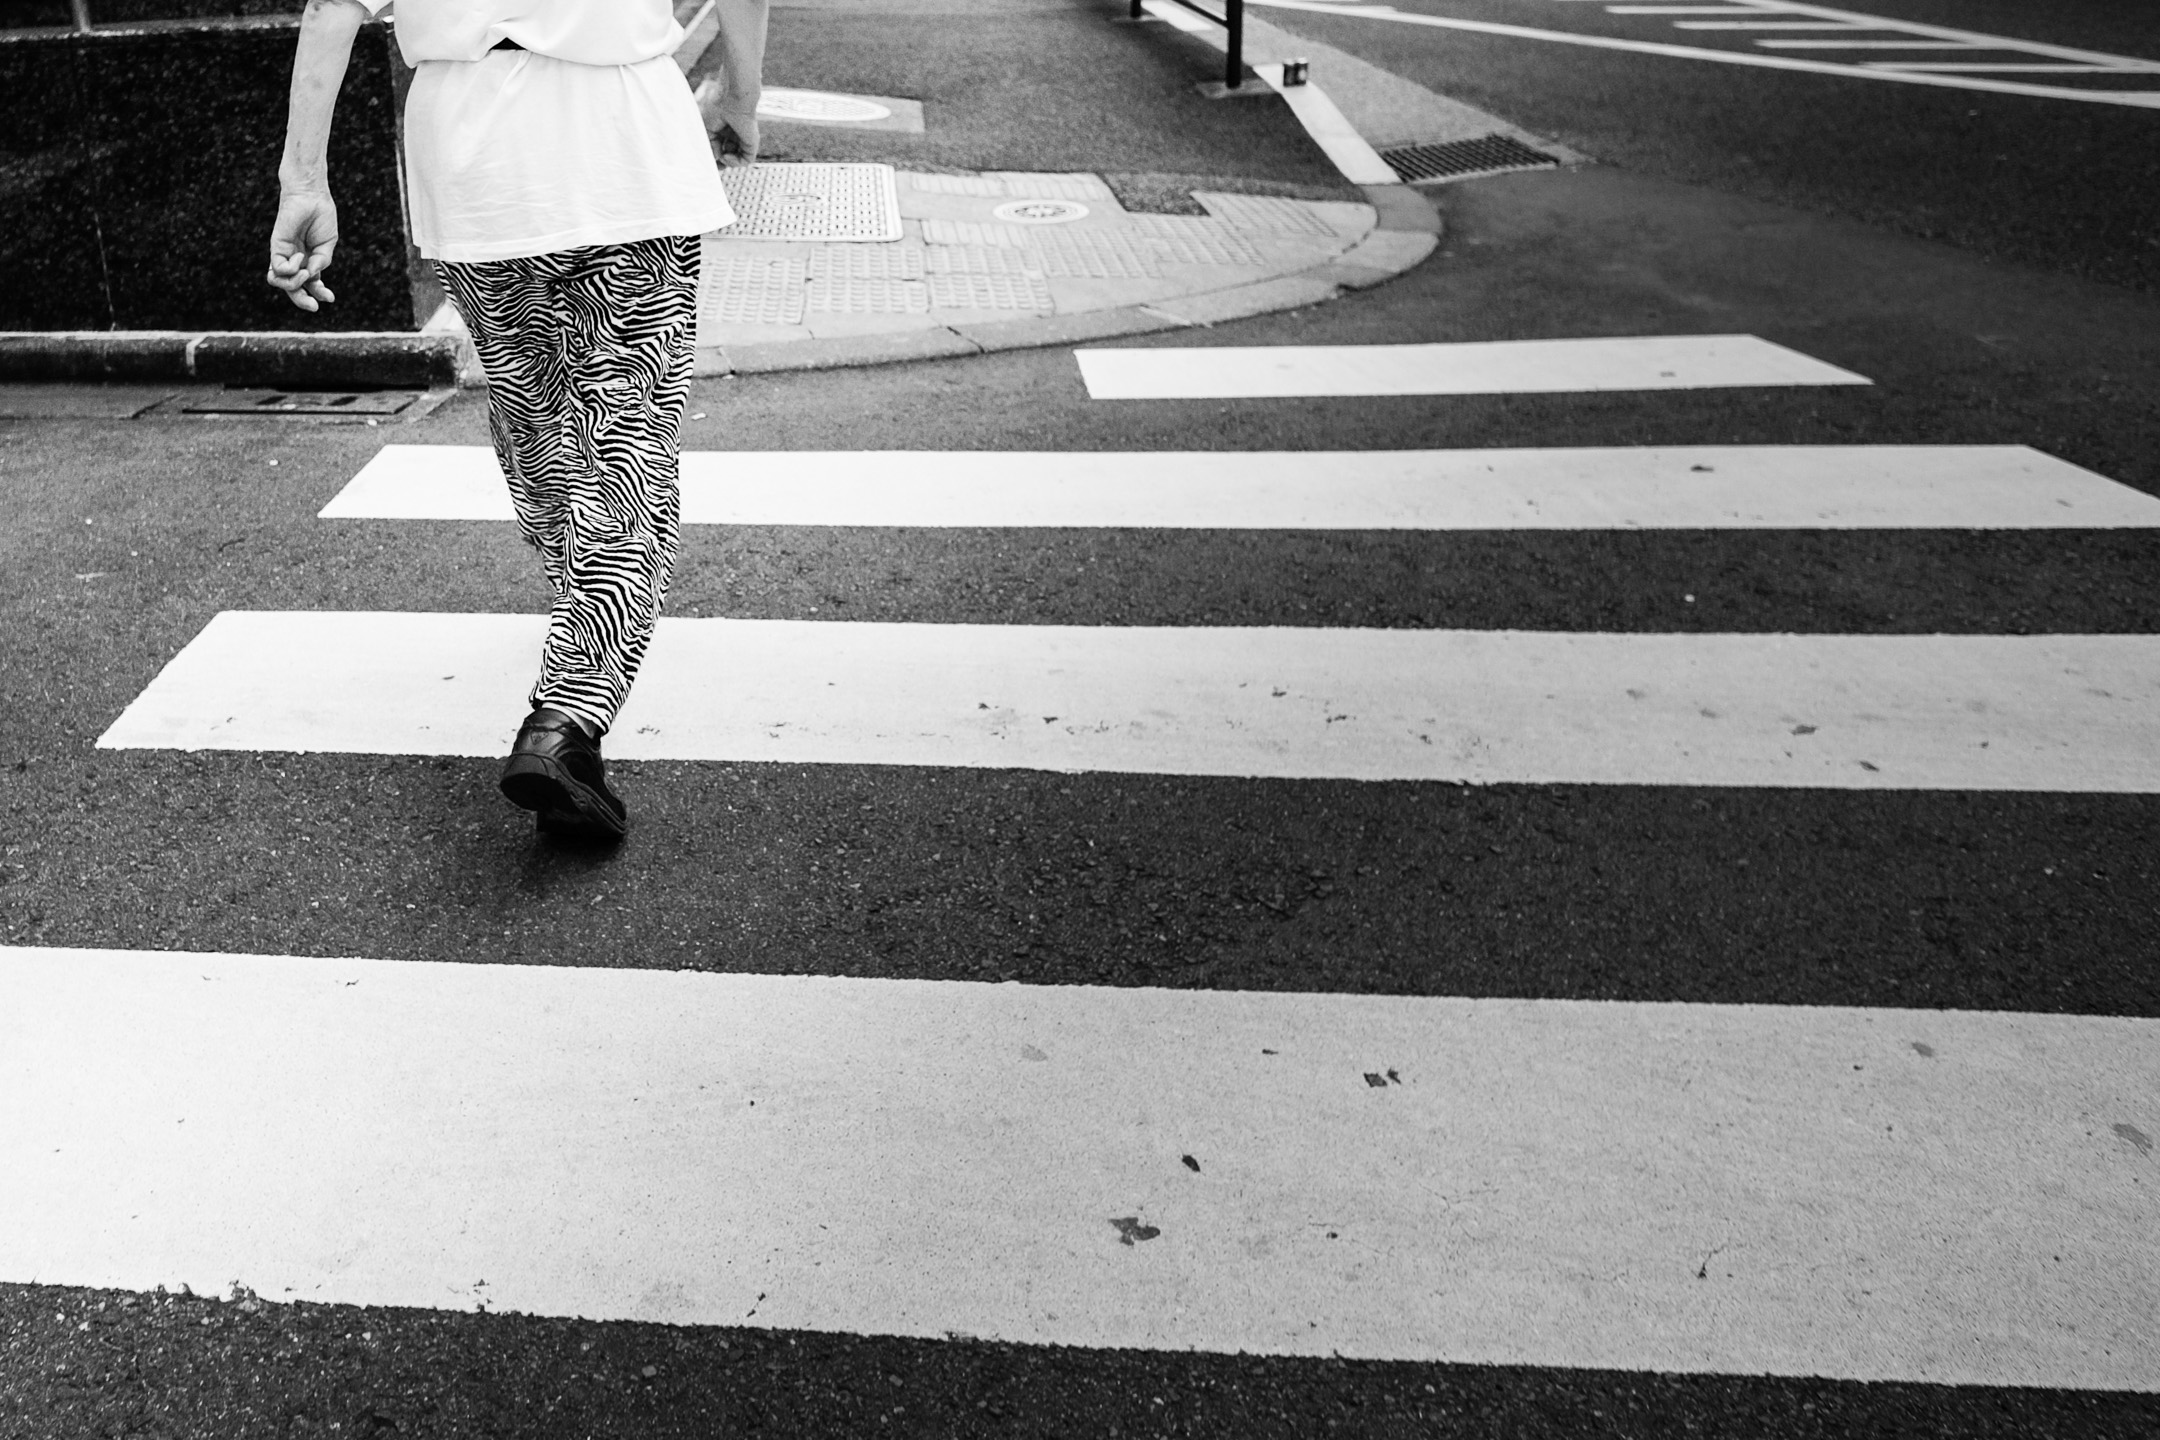 Fujifilm X-Pro1 - 14mm f/2.8 - 1/600 - f/4 - iso400 When I noticed this lady's zebra pants, I started stalking her, hoping she would walk over a pedestrian crossing to match the pattern ... after 10 minutes she did.